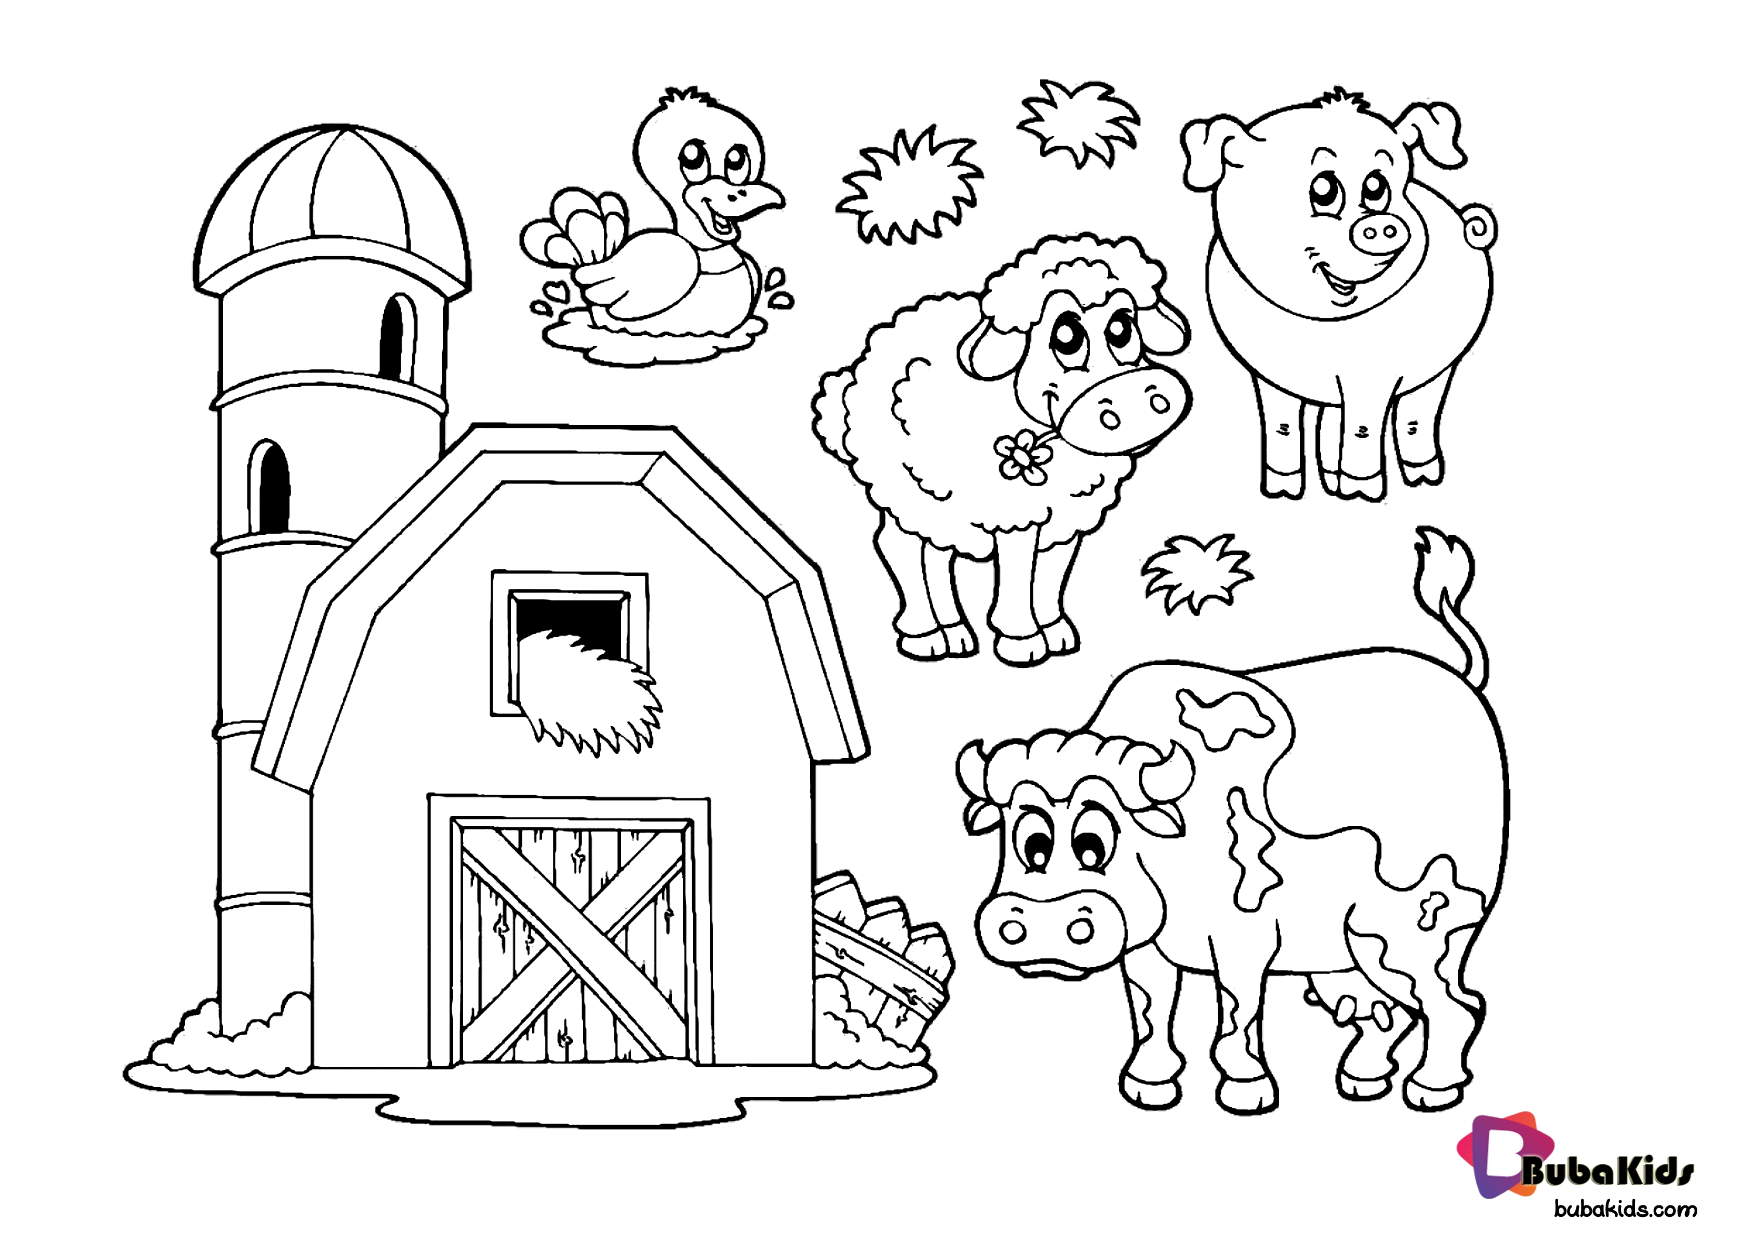 Farm Animal Coloring Page For Children To Print And Color Collection Of Animal Coloring Pages Farm Animal Coloring Pages Animal Coloring Pages Coloring Pages